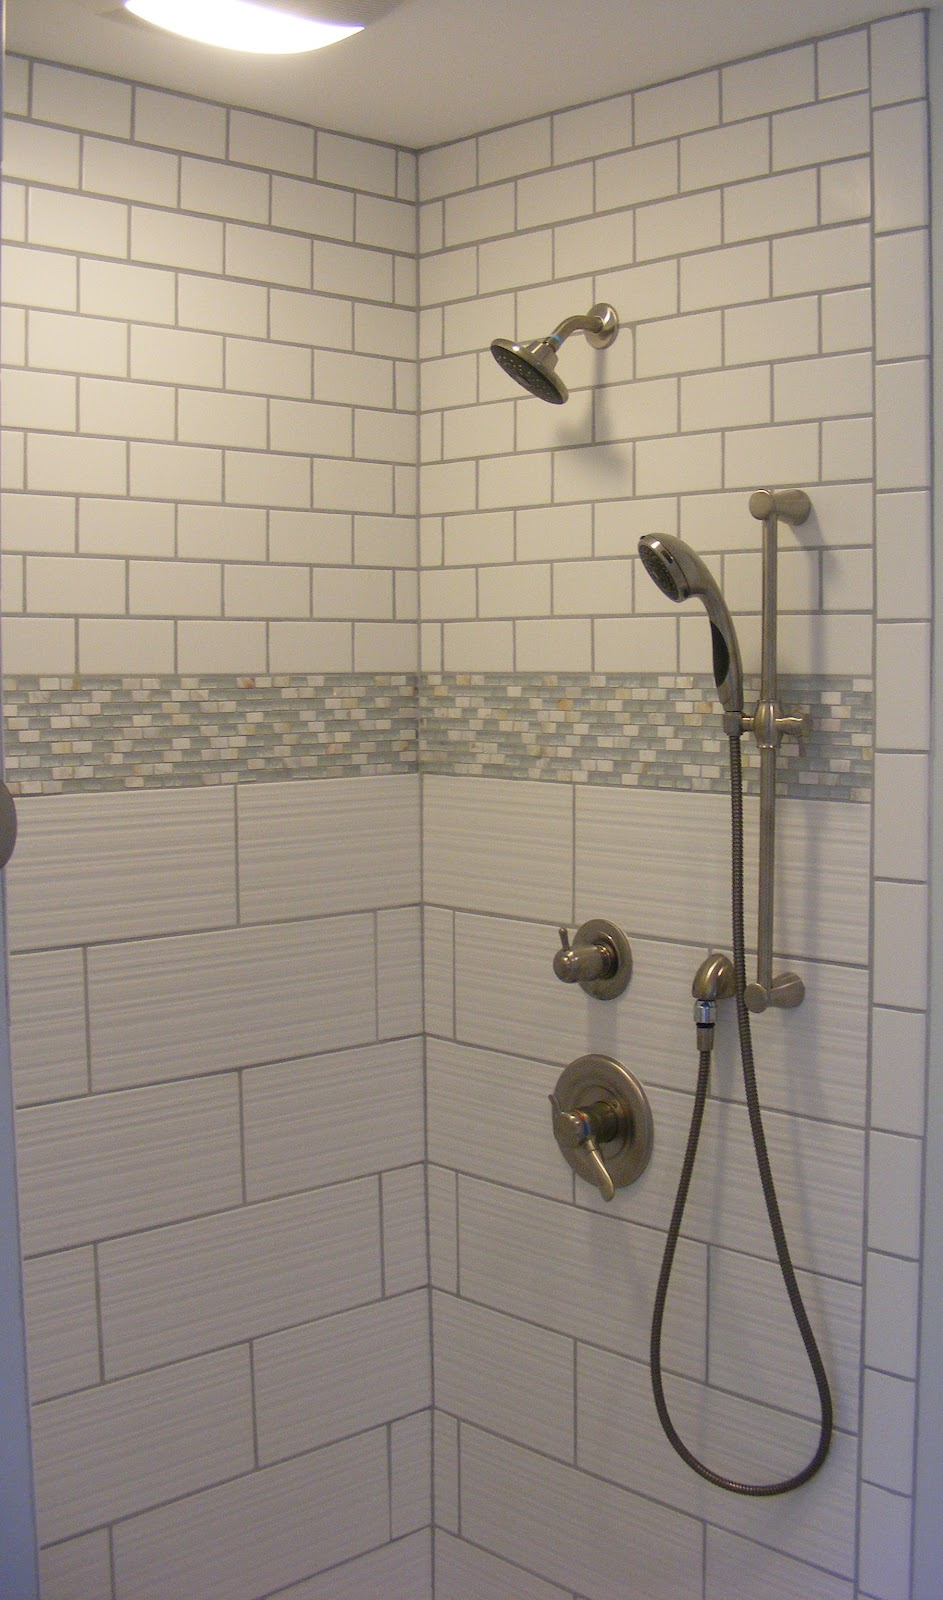 Mhi interiors july 2012 for 12x24 bathroom tile ideas